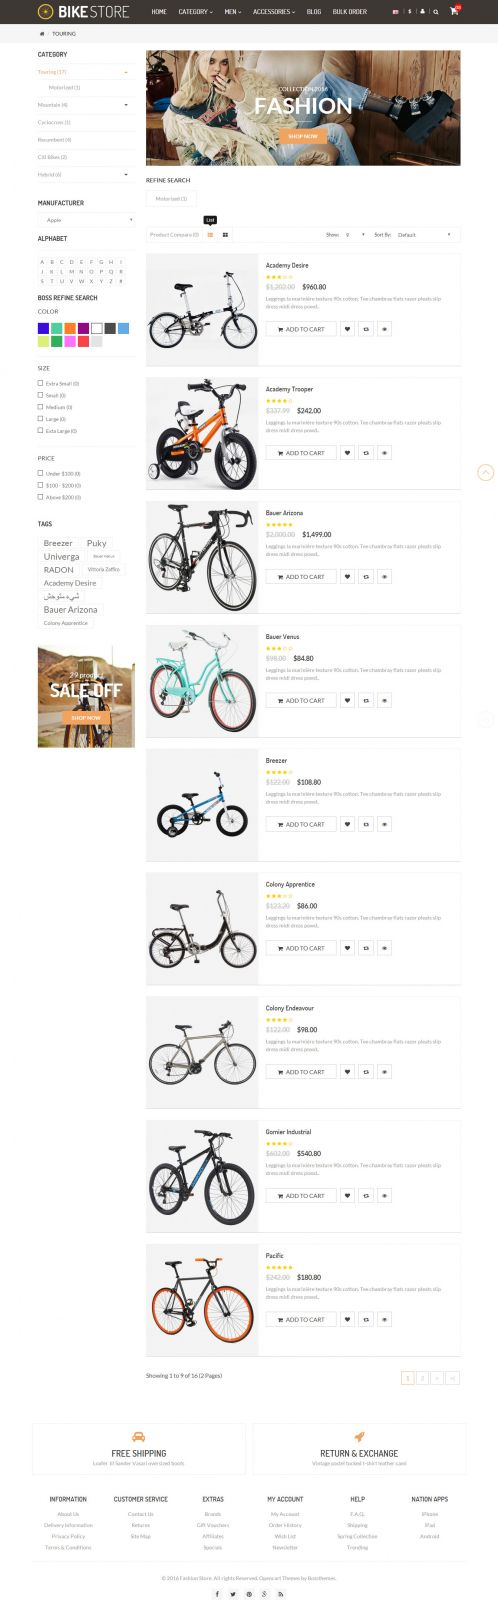 Bossthemes Amazing BikeStore - Category Grid